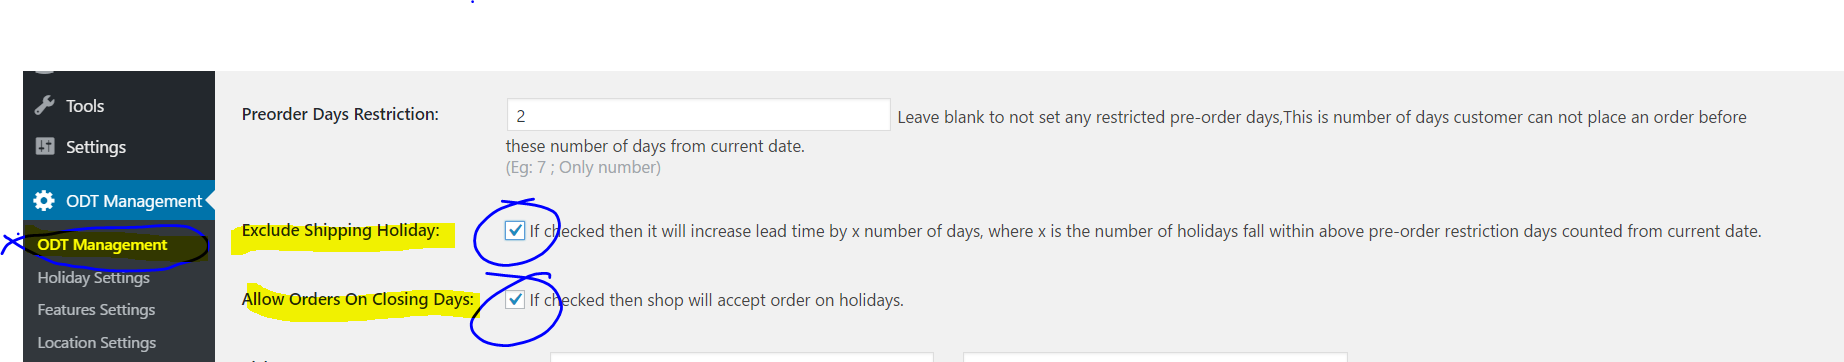 Lead time management for orders posted on store closing days - WooODT Extended